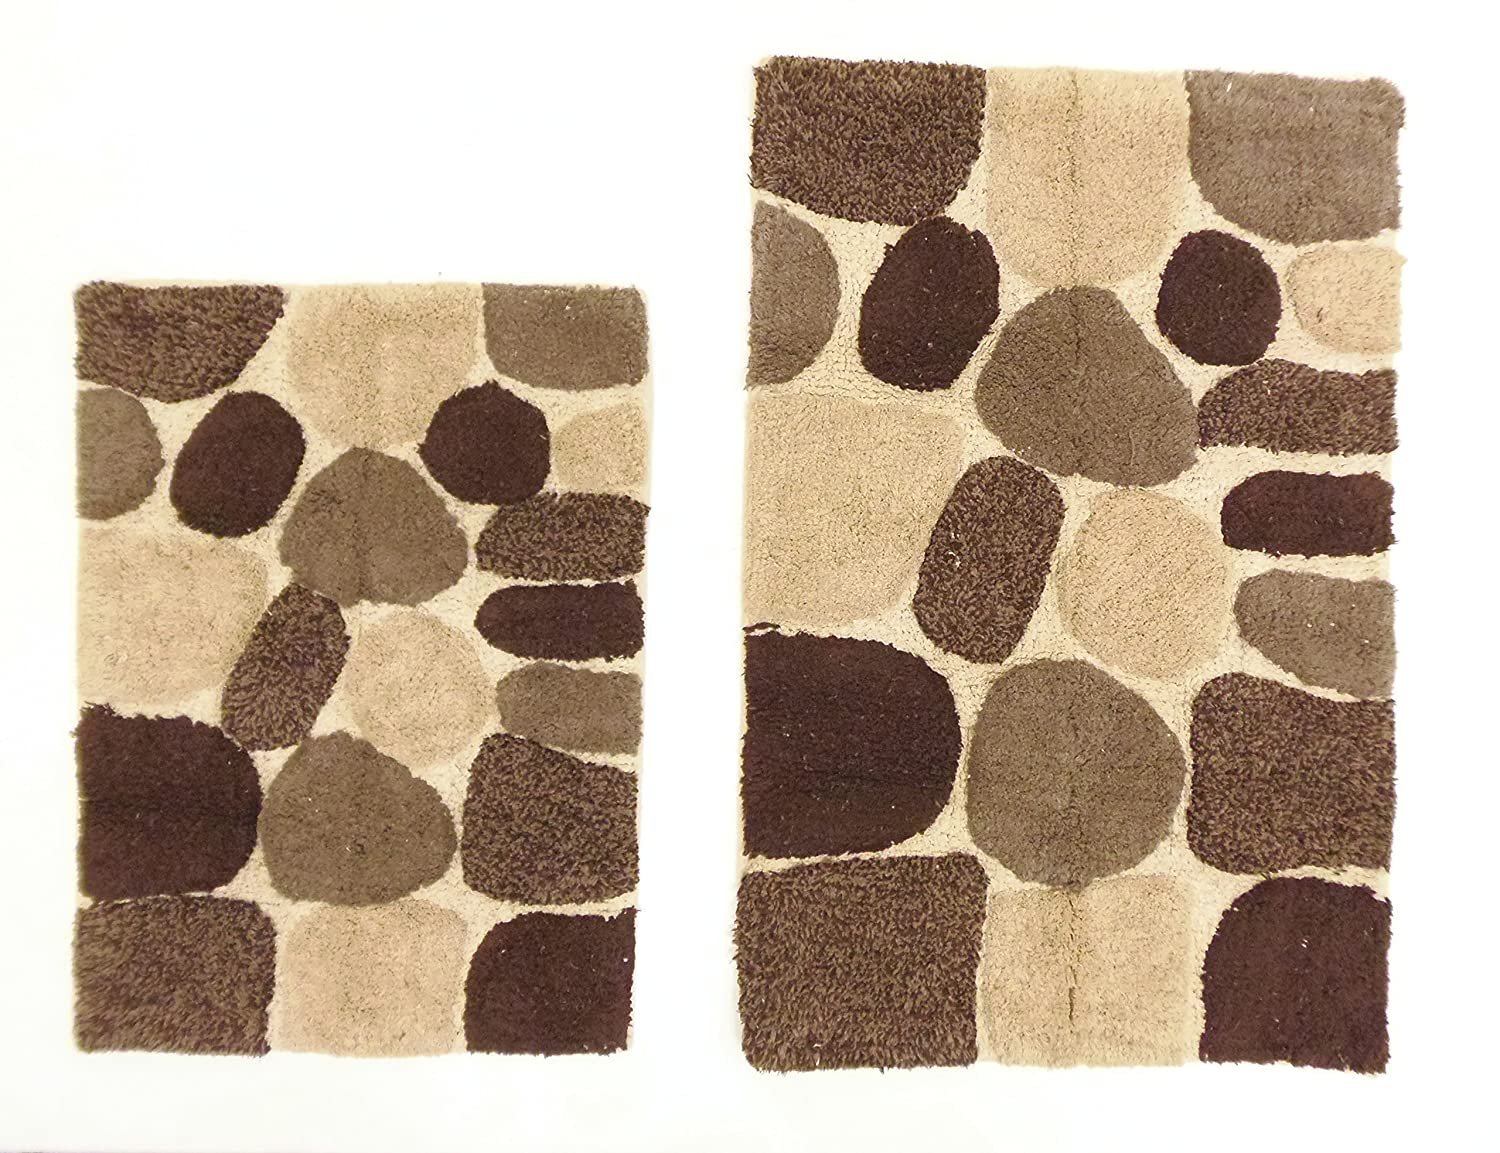 Amazon.com: Cotton Craft - 2 Piece Bath Rug Set - Pebbles Stones ...